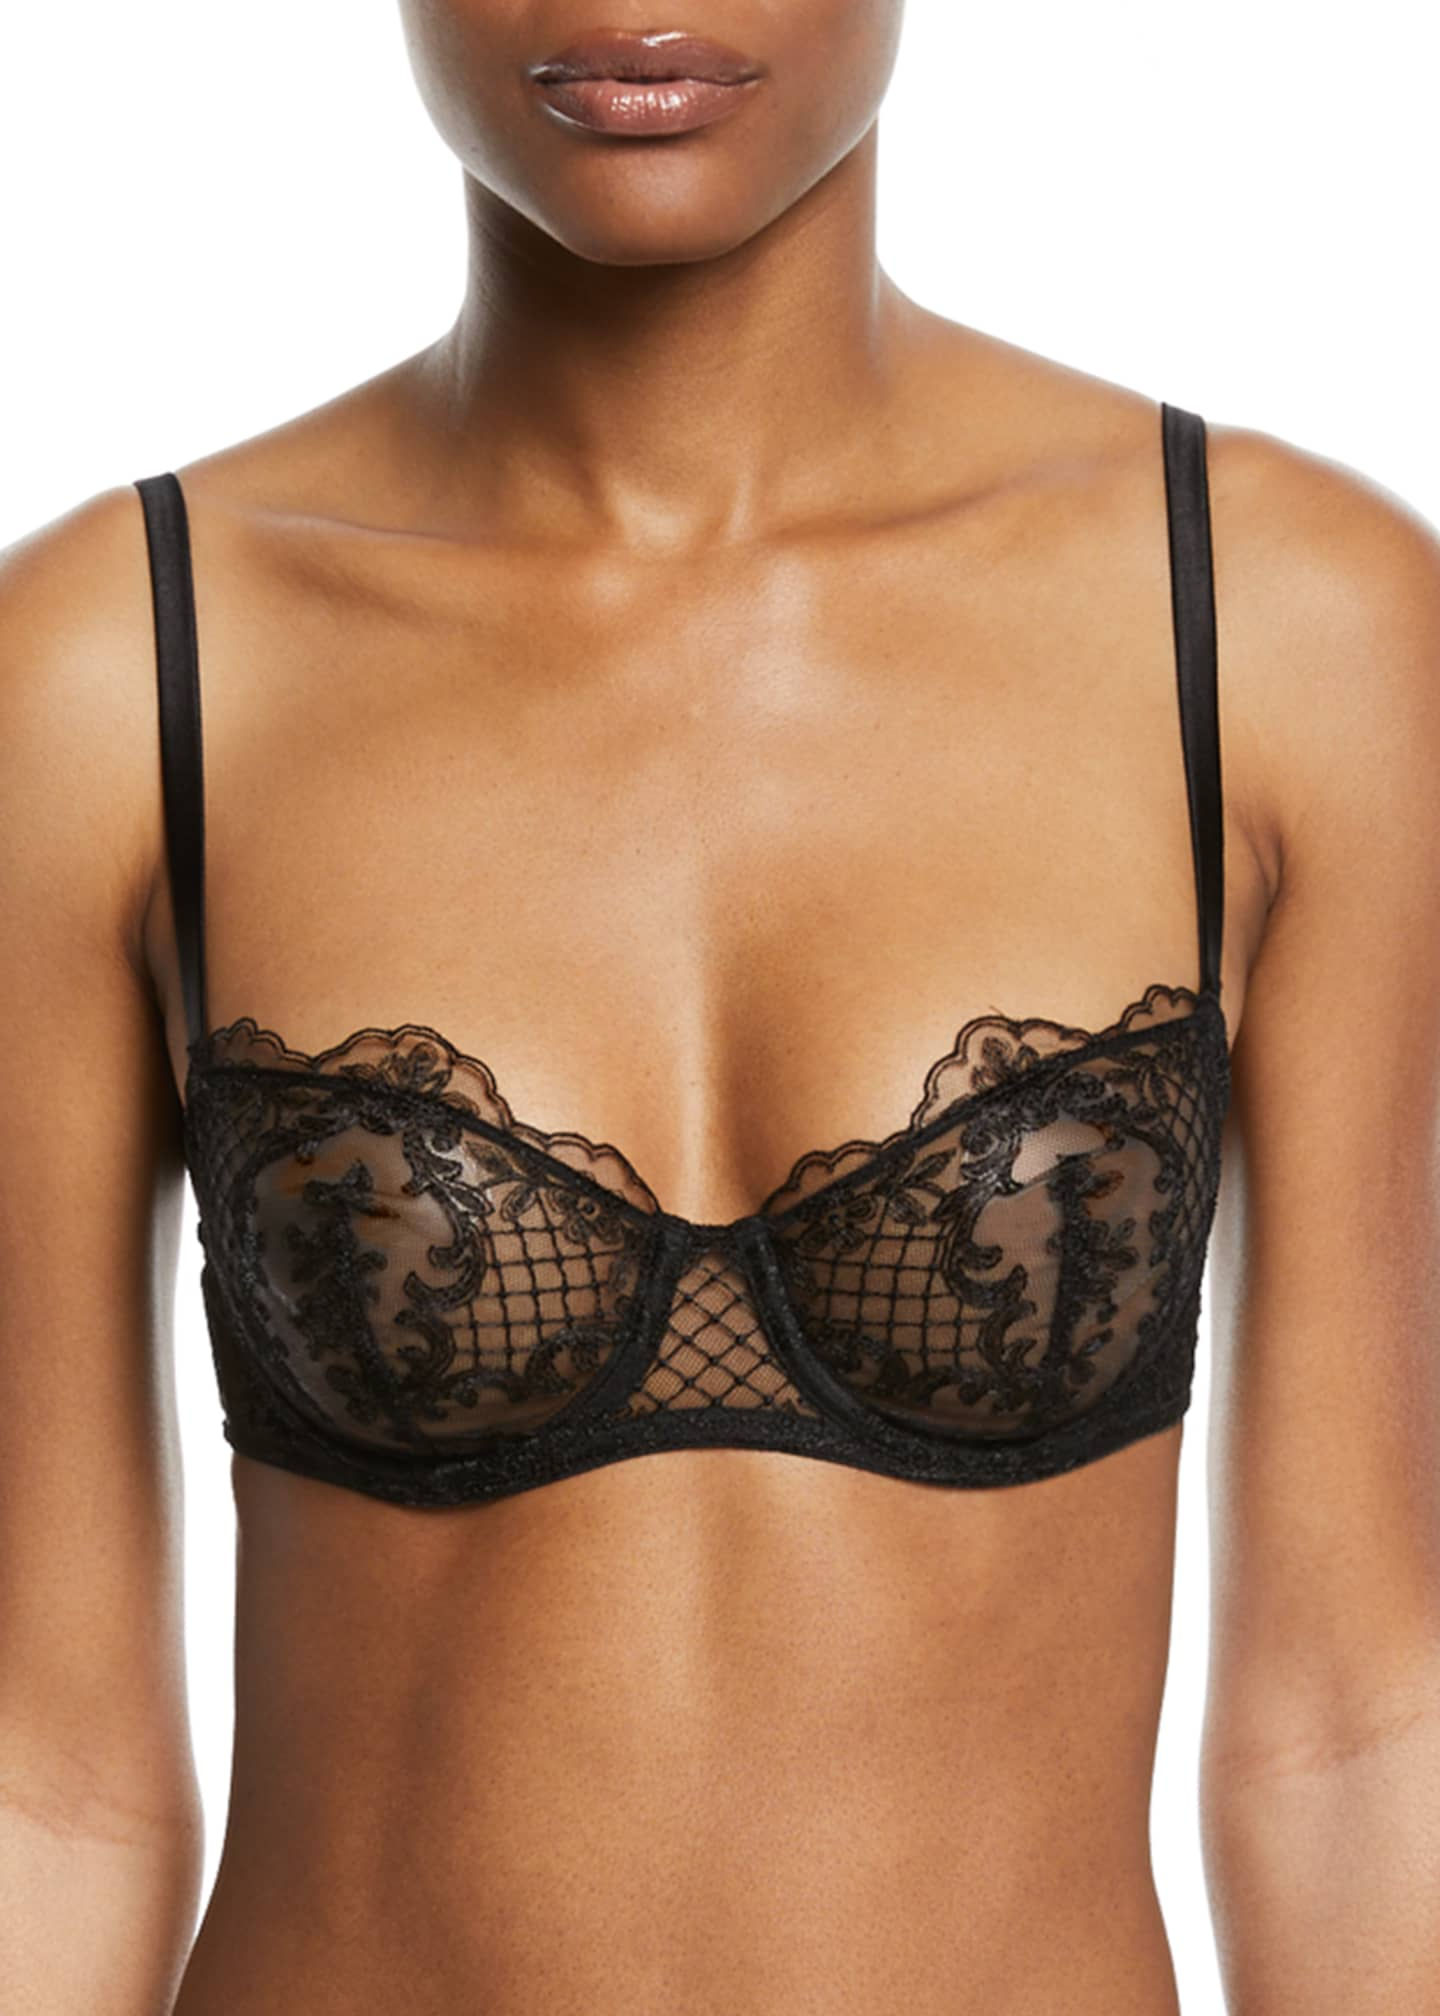 I.D. Sarrieri Accord Prive Underwire Half-Cup Bra